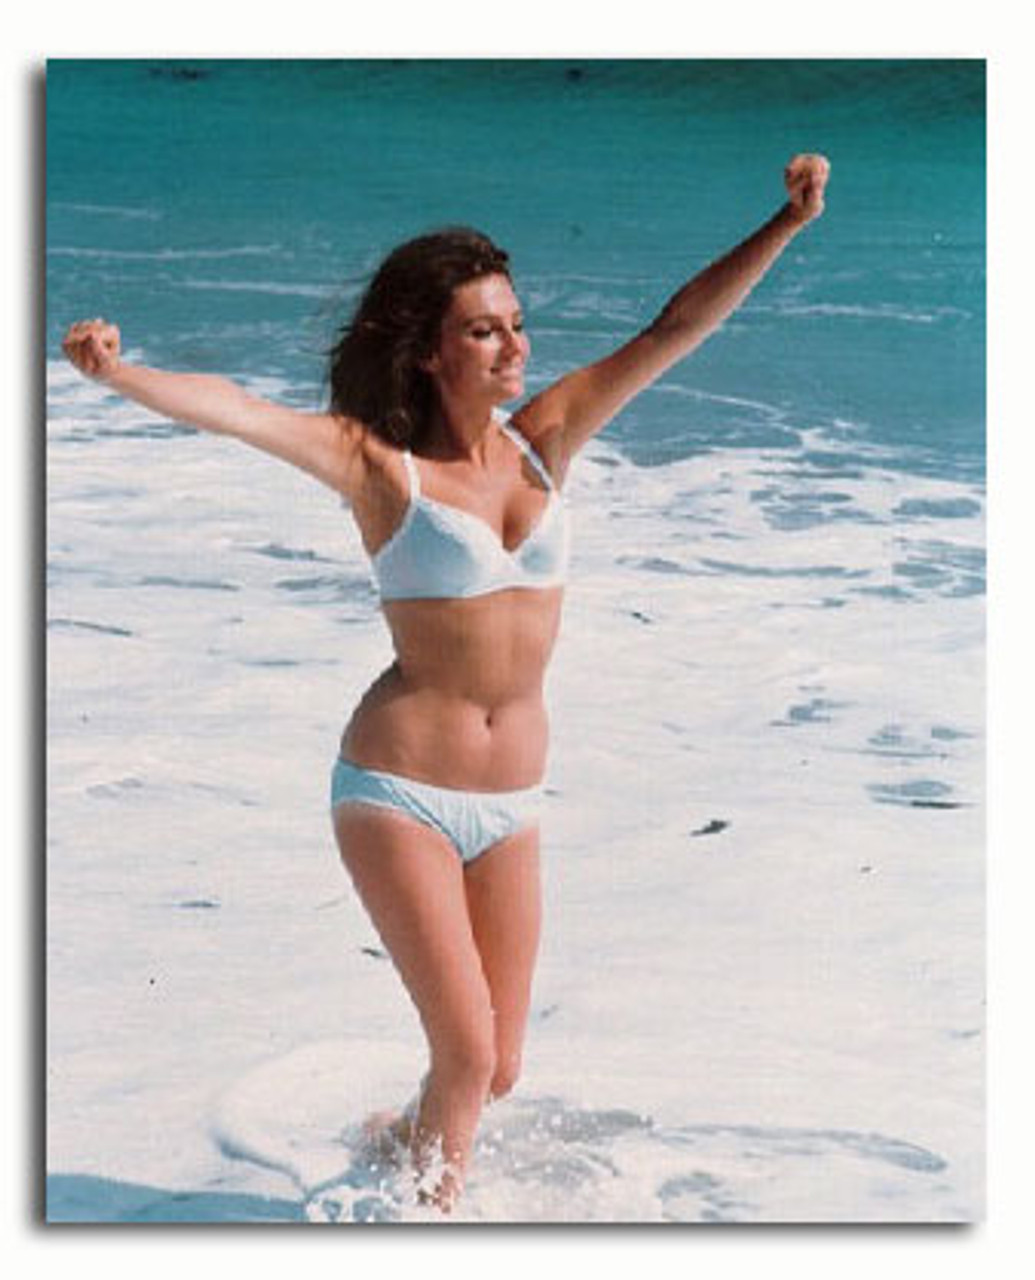 SS3190811) Movie picture of Jacqueline Bisset buy celebrity photos and  posters at Starstills.com